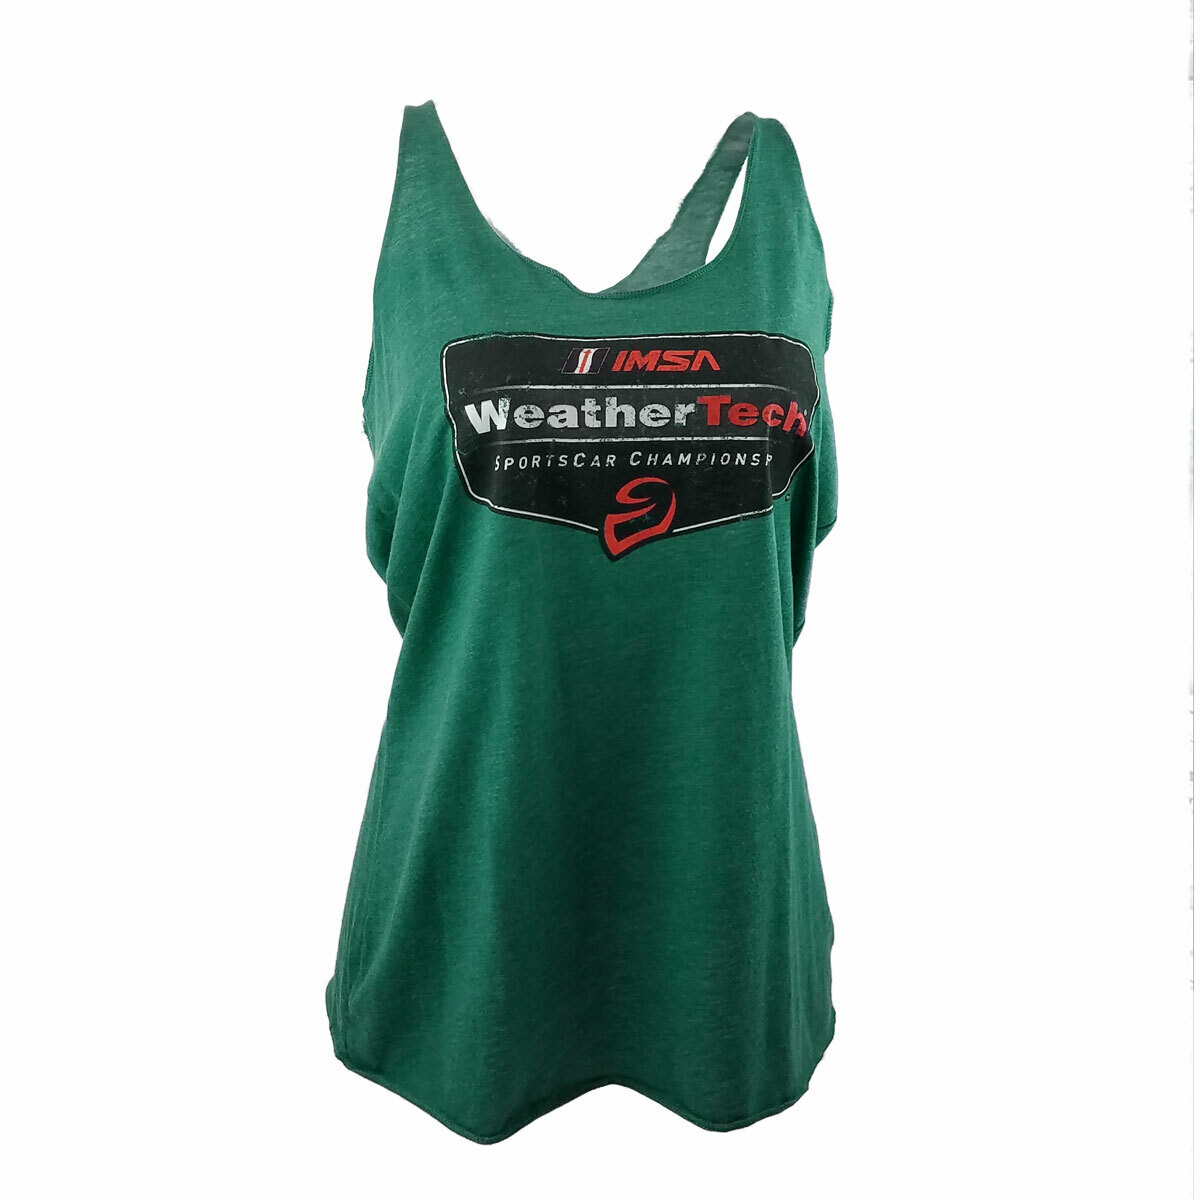 Weathertech Ladies Tank Top - Teal